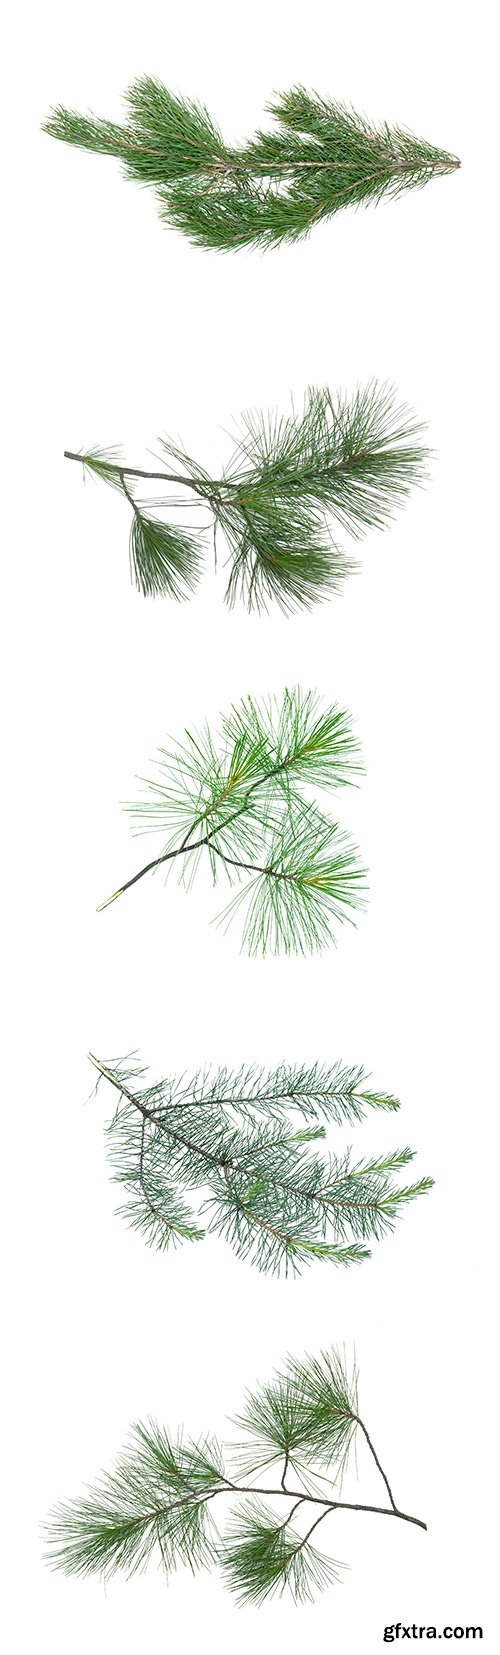 Green Pine Tree Branch Isolated - 10xJPGs